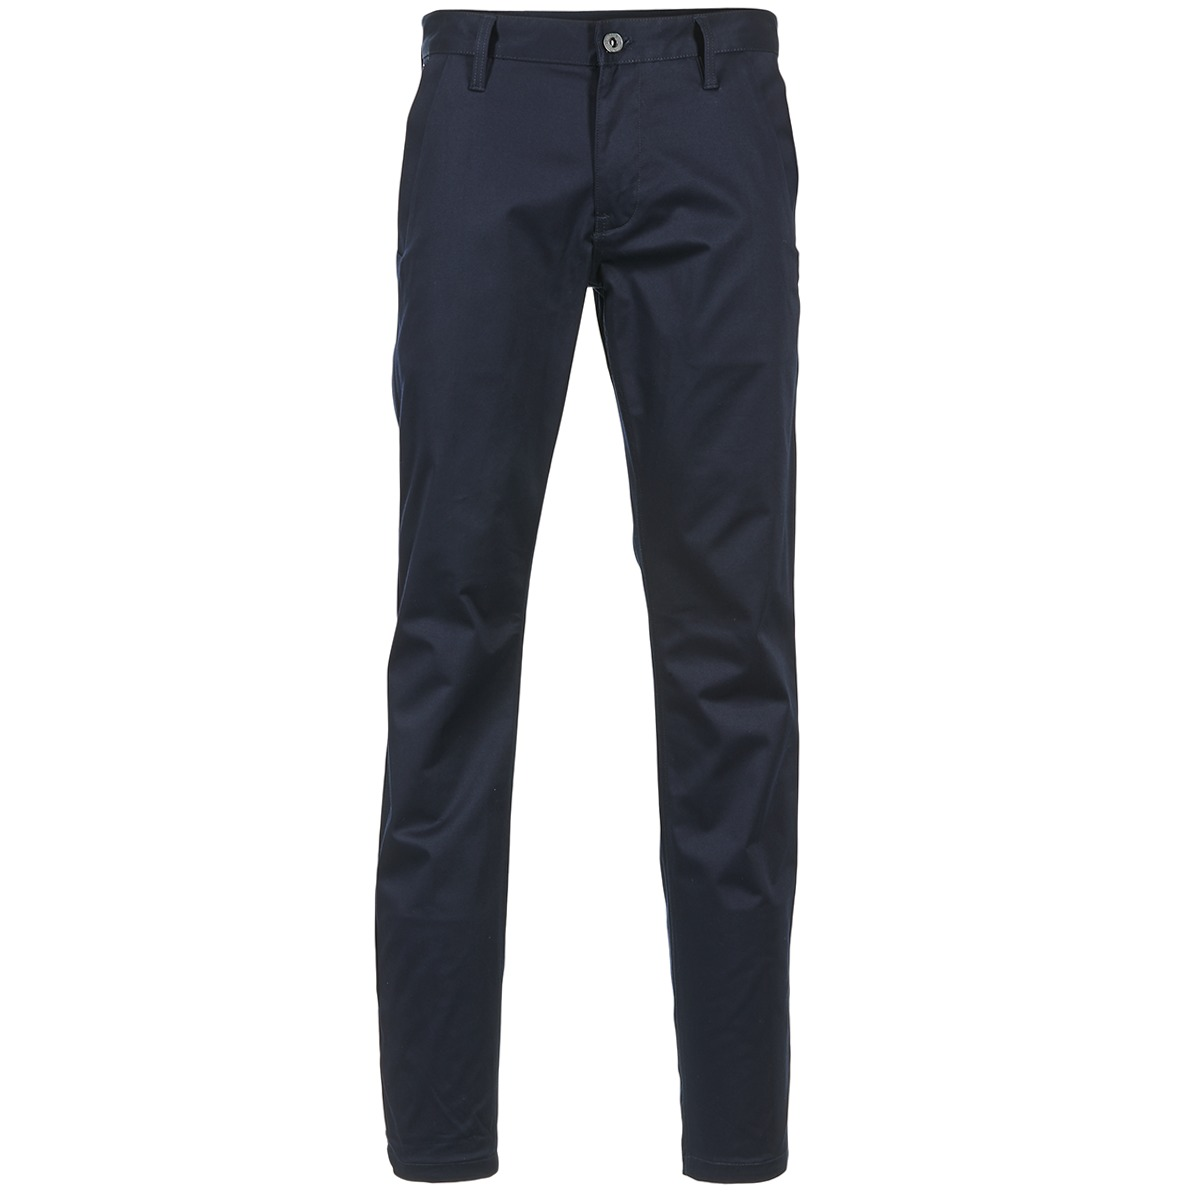 G-Star Raw BRONSON SLIM Marine